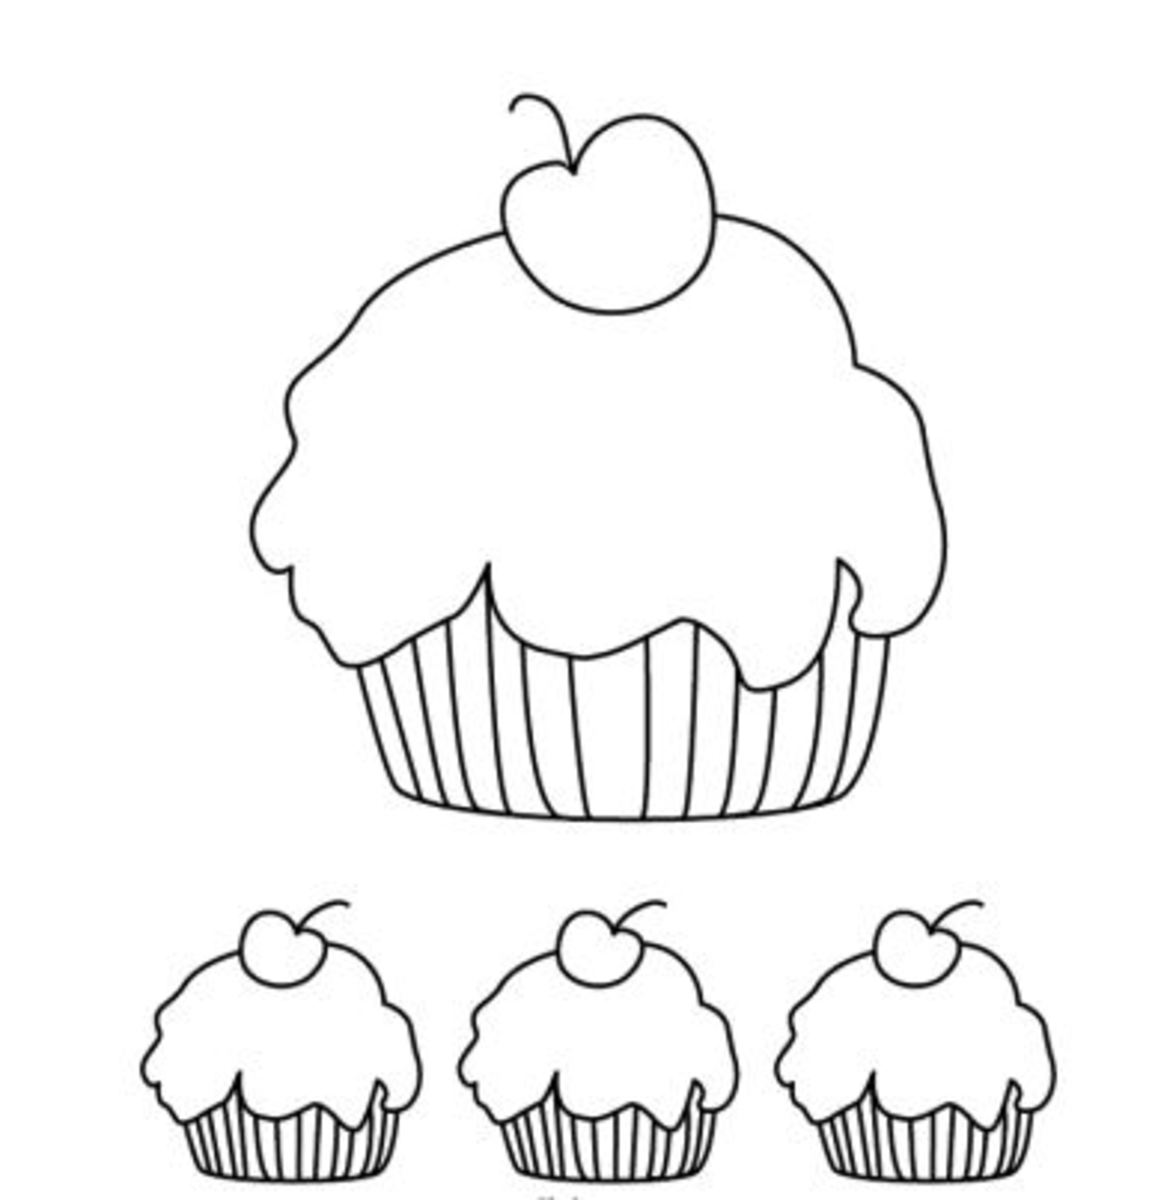 Cupcakes coloring page, birthday coloring sheet